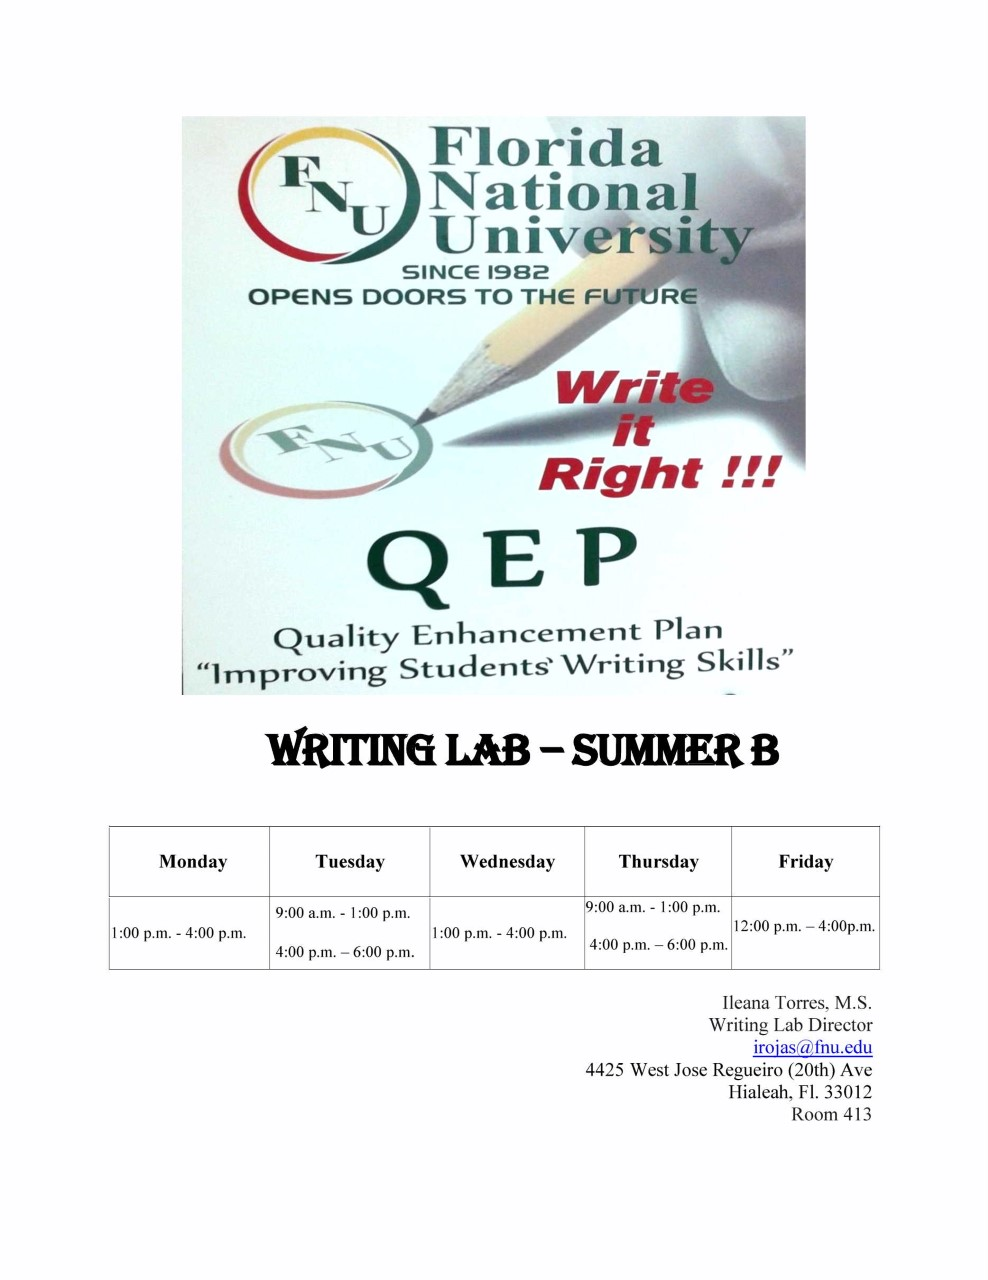 WRITING LAB summer B hours flyer